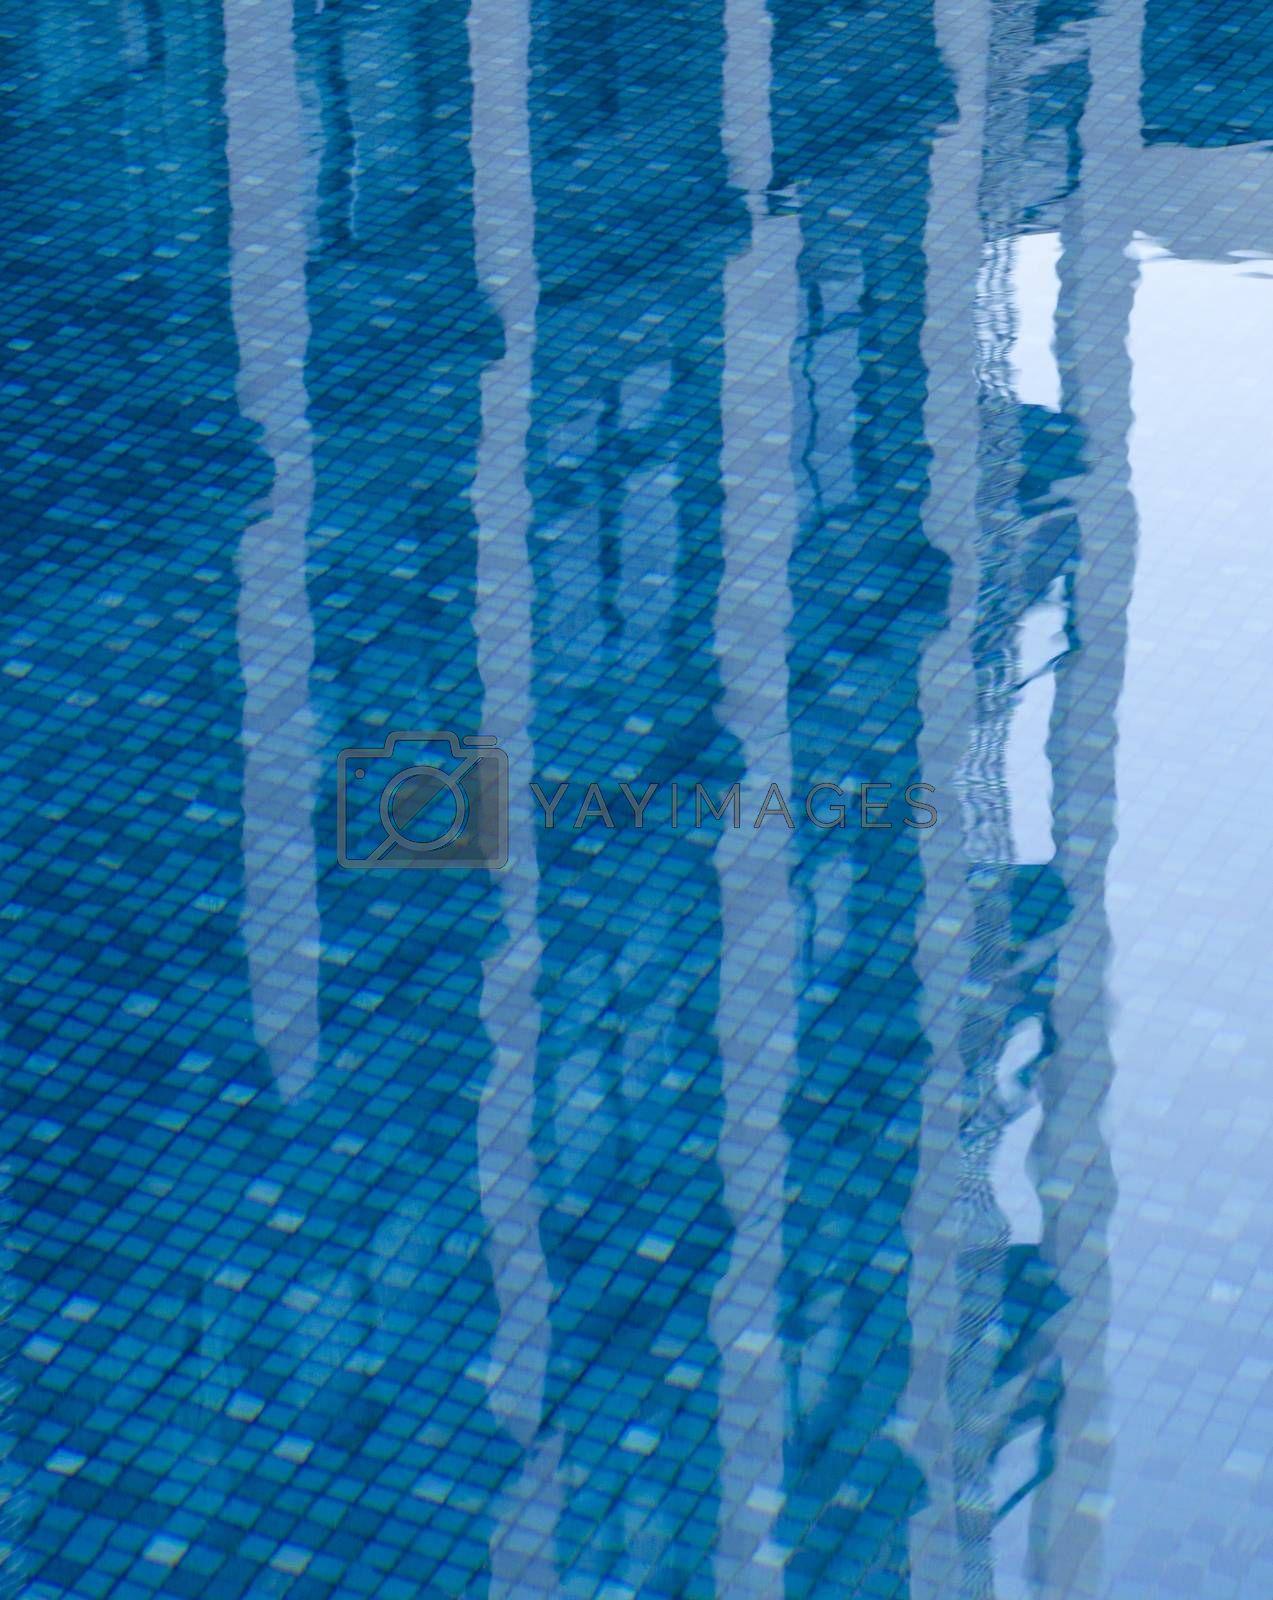 Reflections of building in the calm blue water of a swimming pool